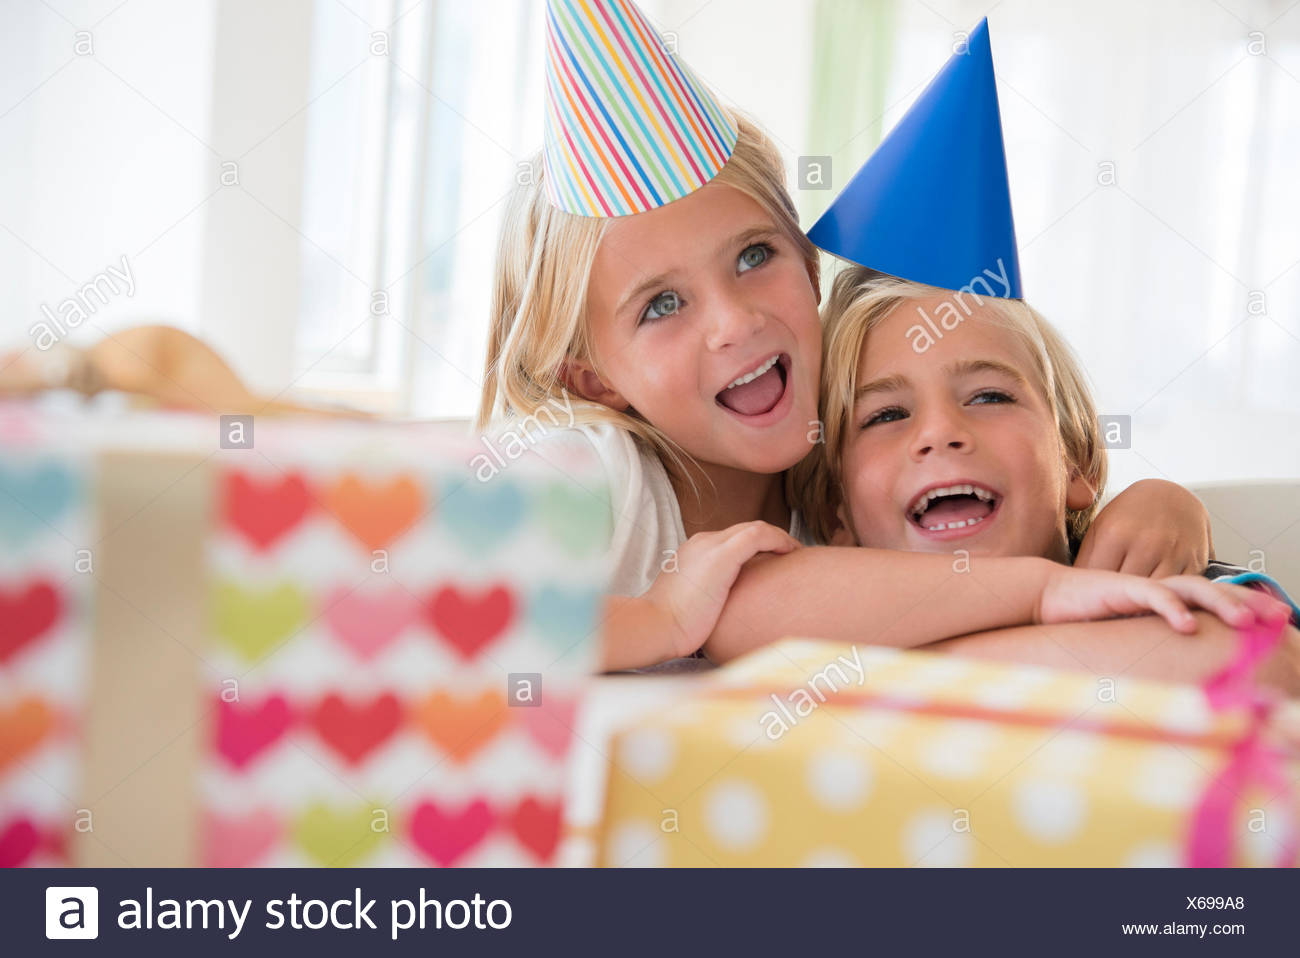 Brother (4-5) and sister (6-7) in embrace at birthday party - Stock Image